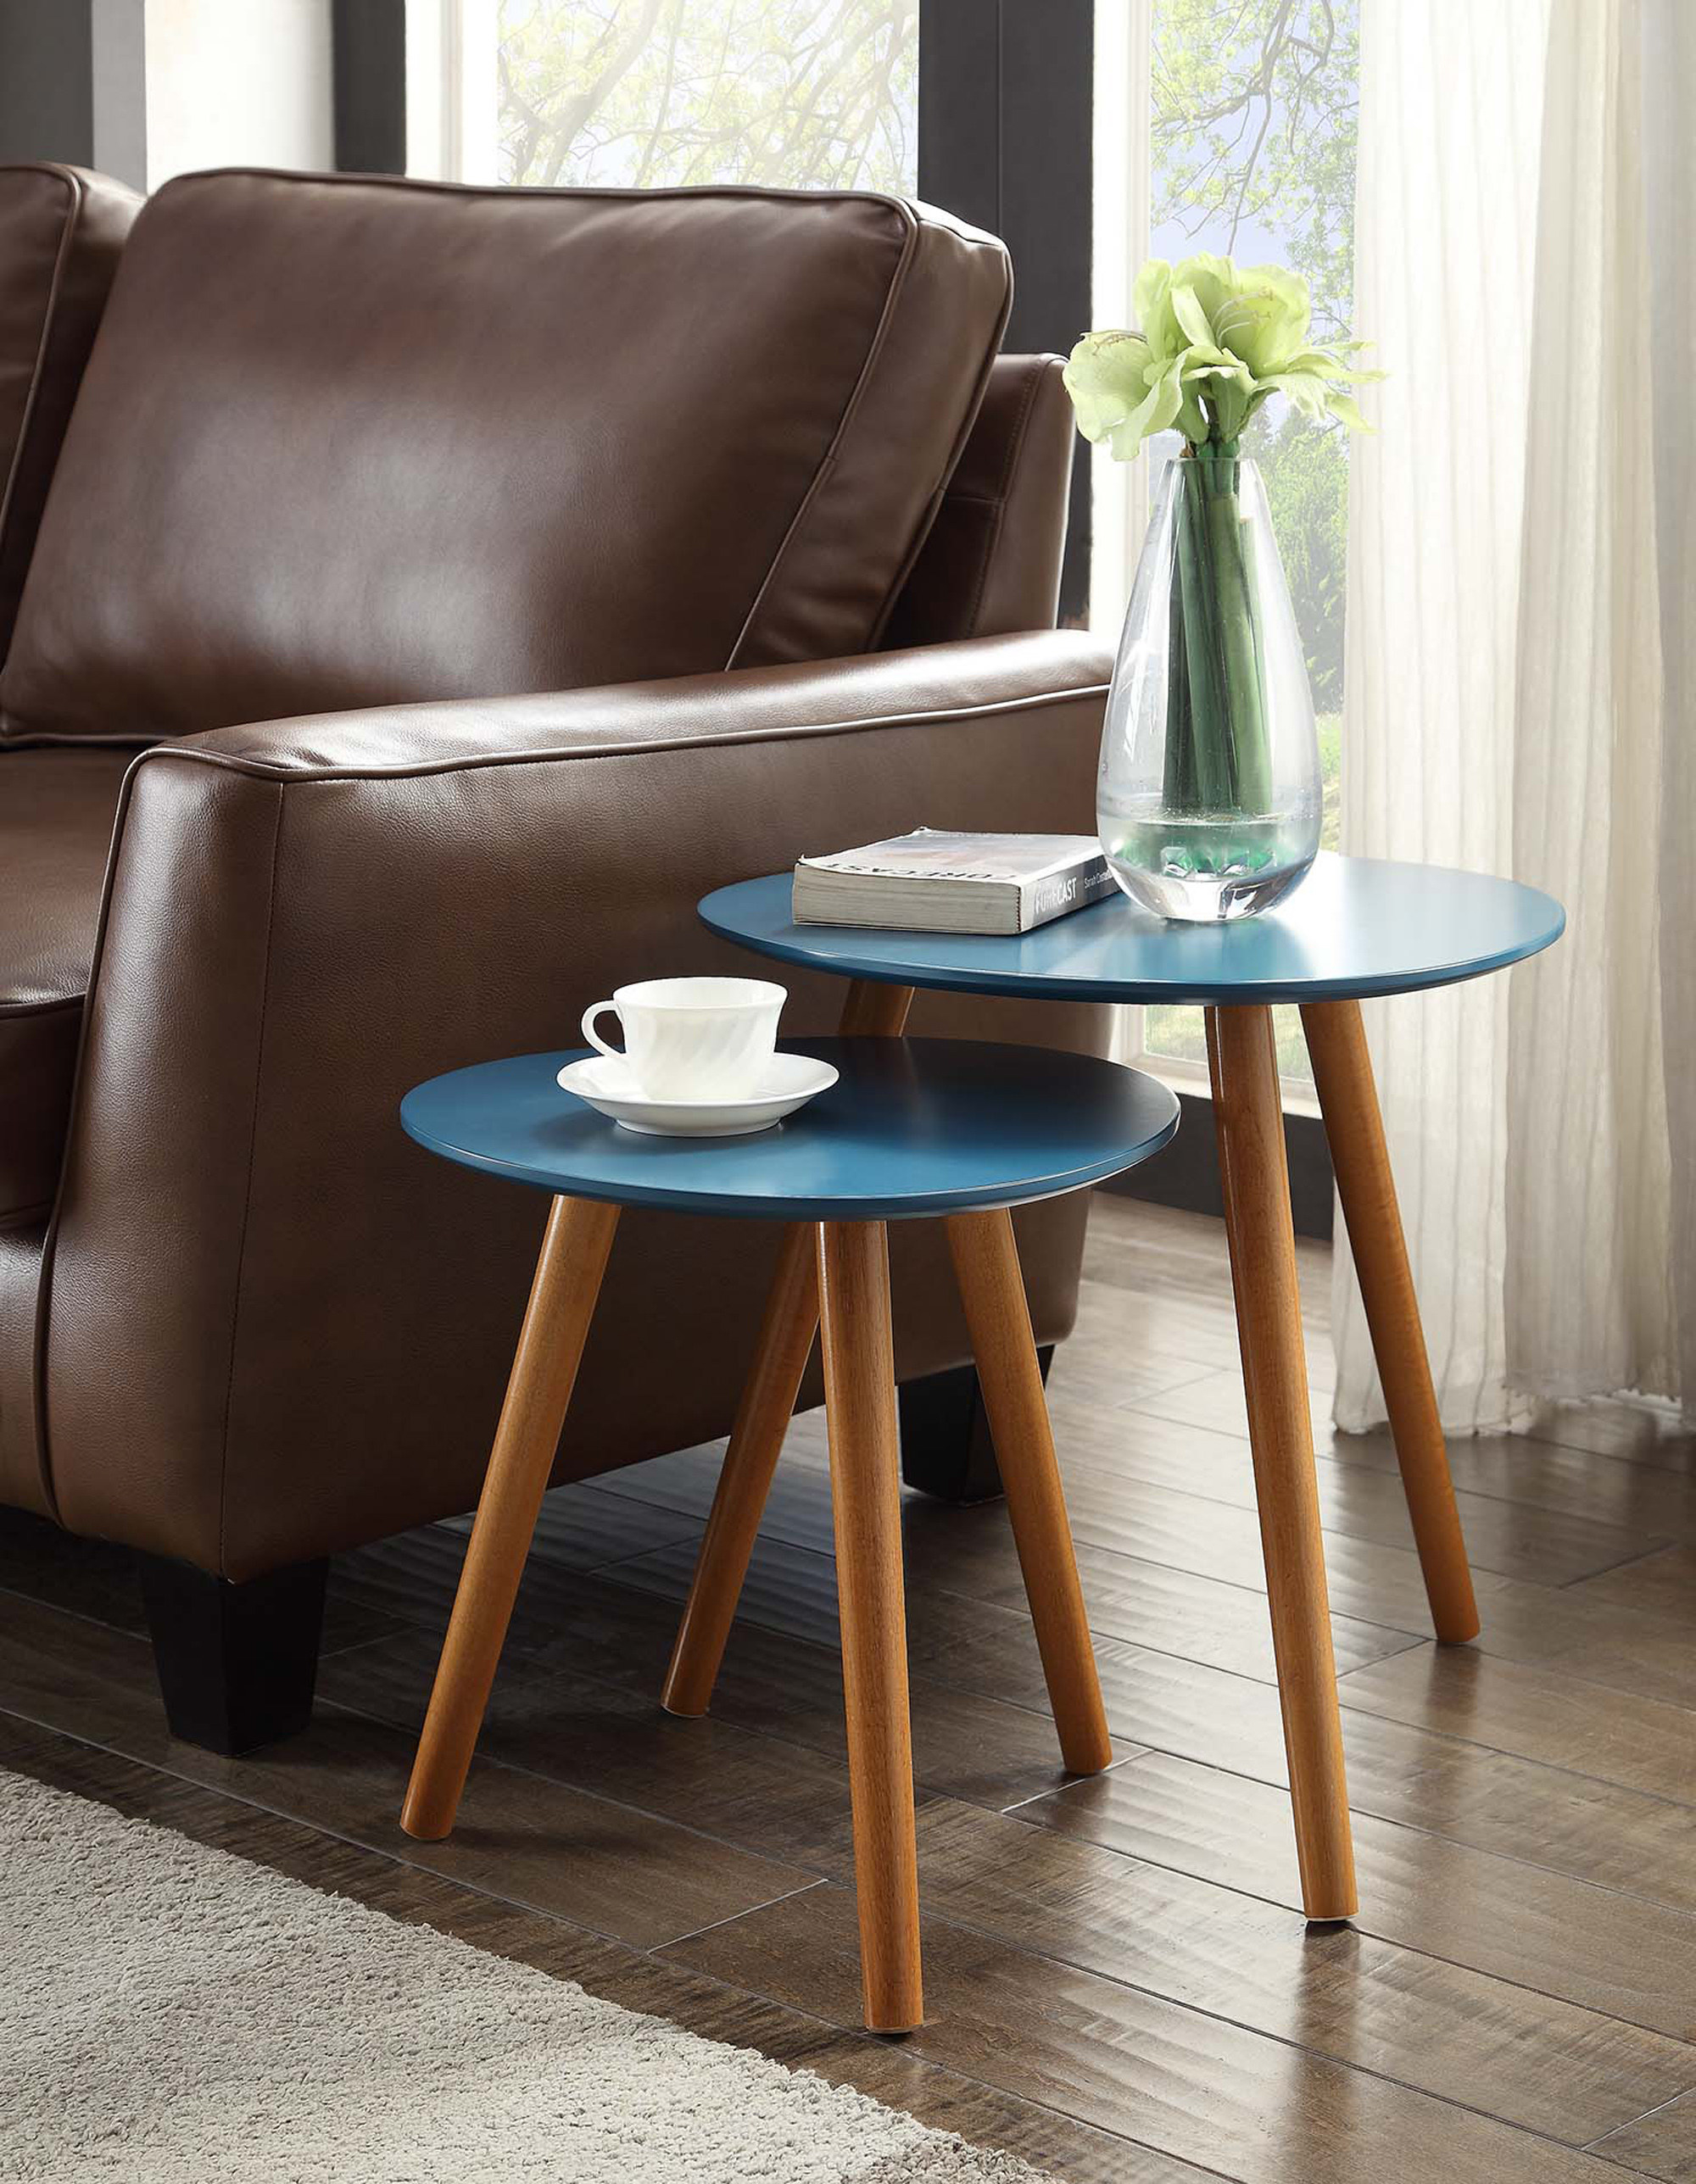 The set, which includes one small table that fits under a larger table, both with rounded tops and splayed legs, in blue, with natural wood colored legs